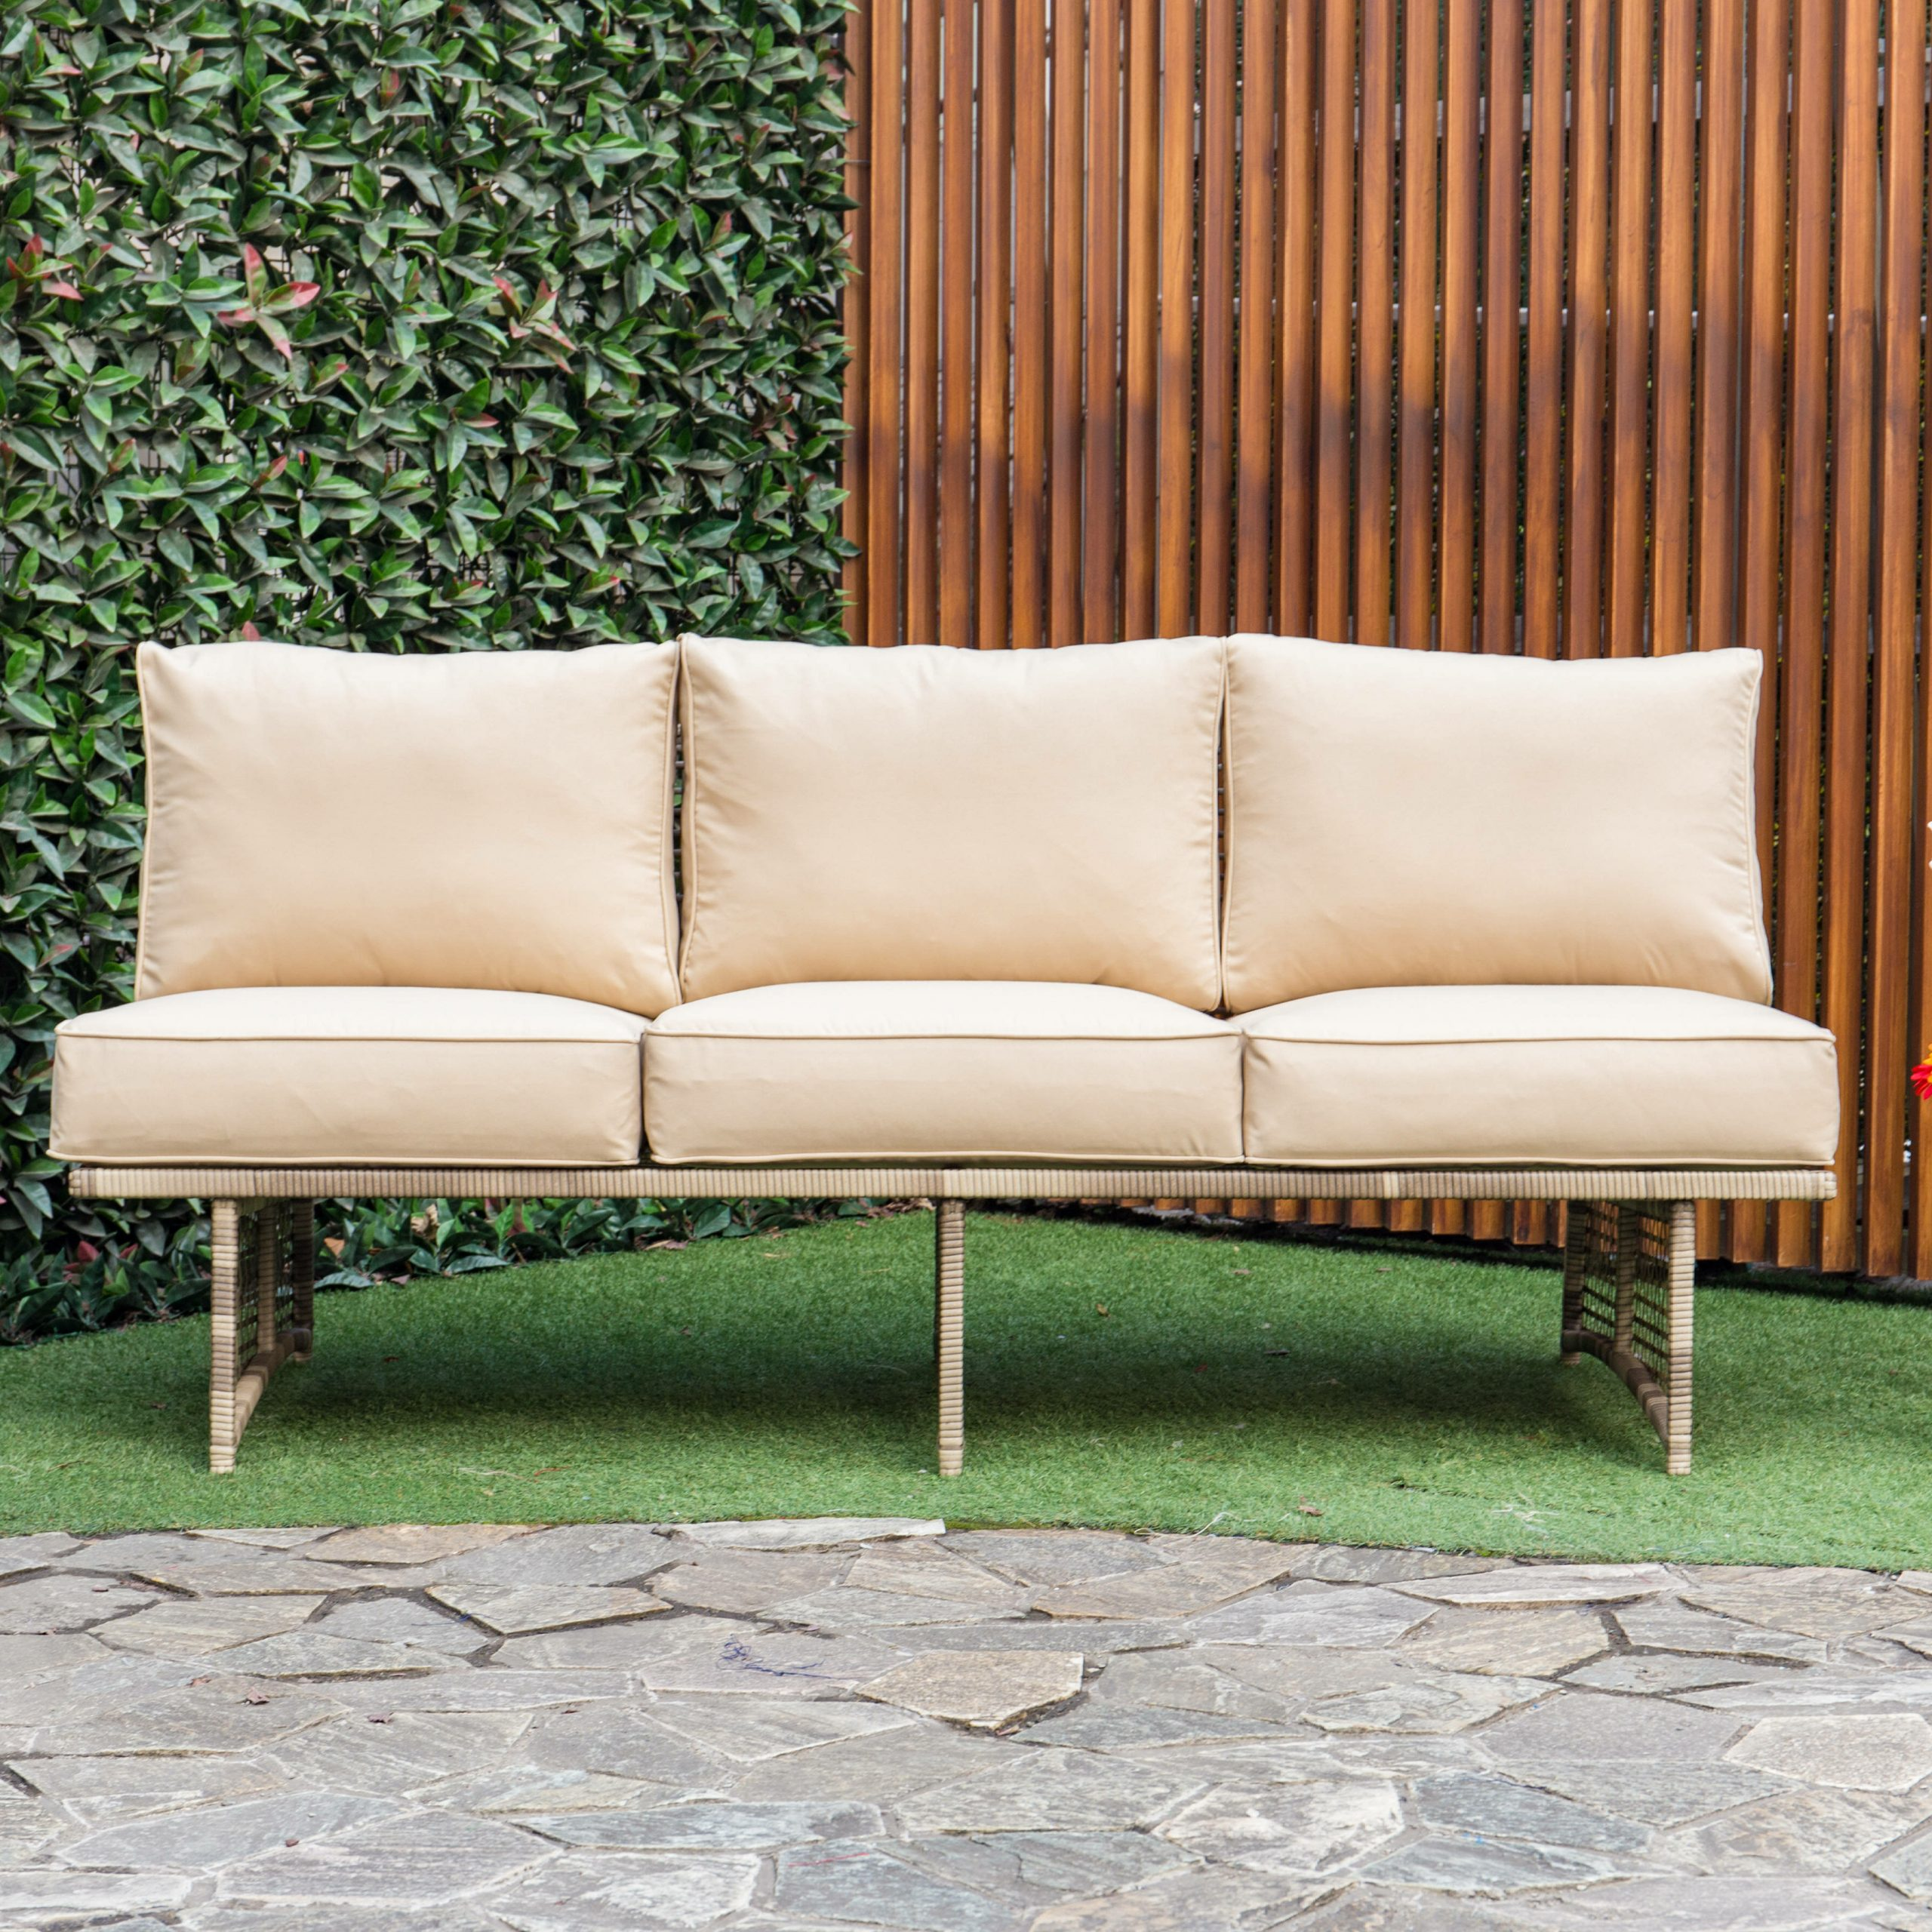 2020 Dakota Outdoor Rattan Patio Sofa With Cushions Regarding Rossville Outdoor Patio Sofas With Cushions (View 18 of 25)